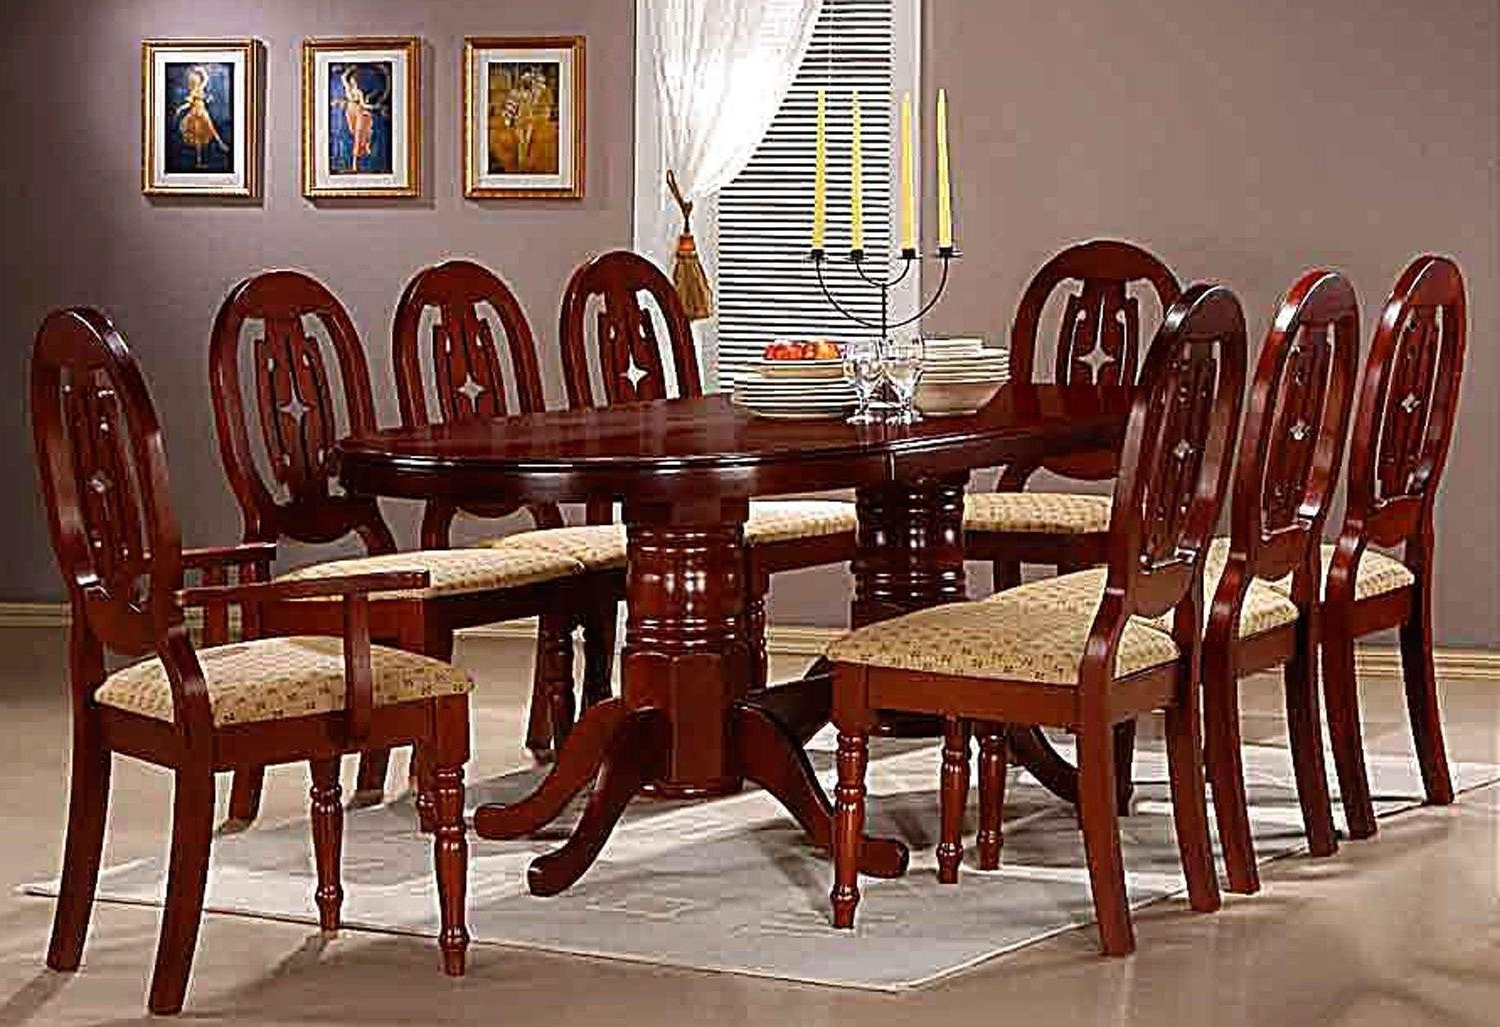 Black 8 Seater Dining Tables Throughout Most Current Wooden 8 Seater Dinning Table Set Glow Finish With Chairs (View 10 of 25)